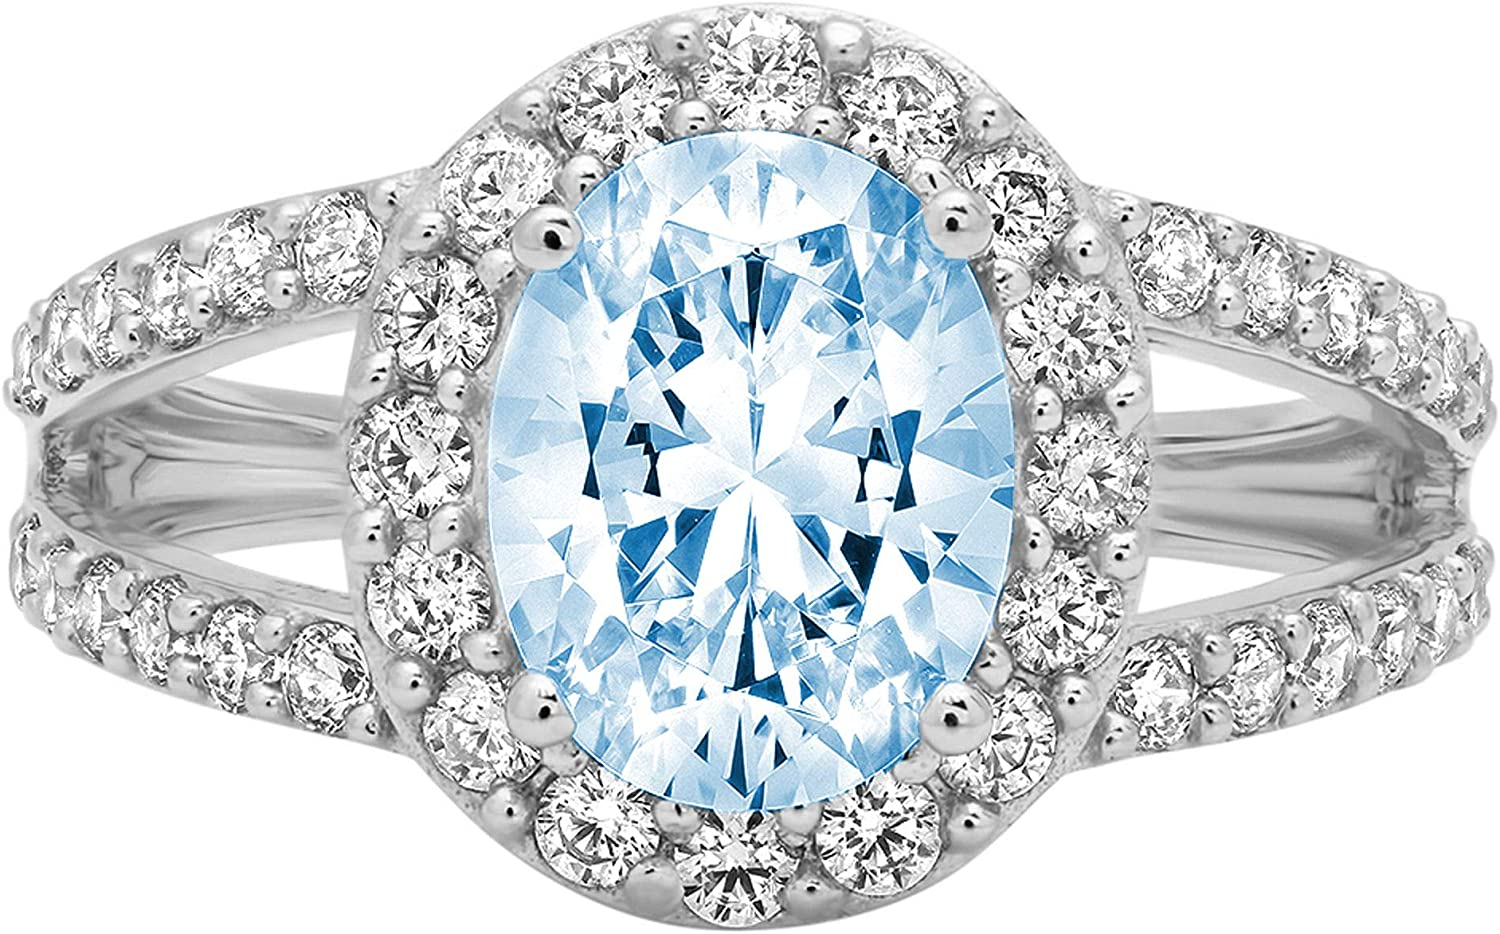 2.24 ct Oval Cut Solitaire Accent Halo split shank Genuine Flawless Natural Sky Blue Topaz Gemstone Engagement Promise Statement Anniversary Bridal Wedding Ring Solid 18K White Gold